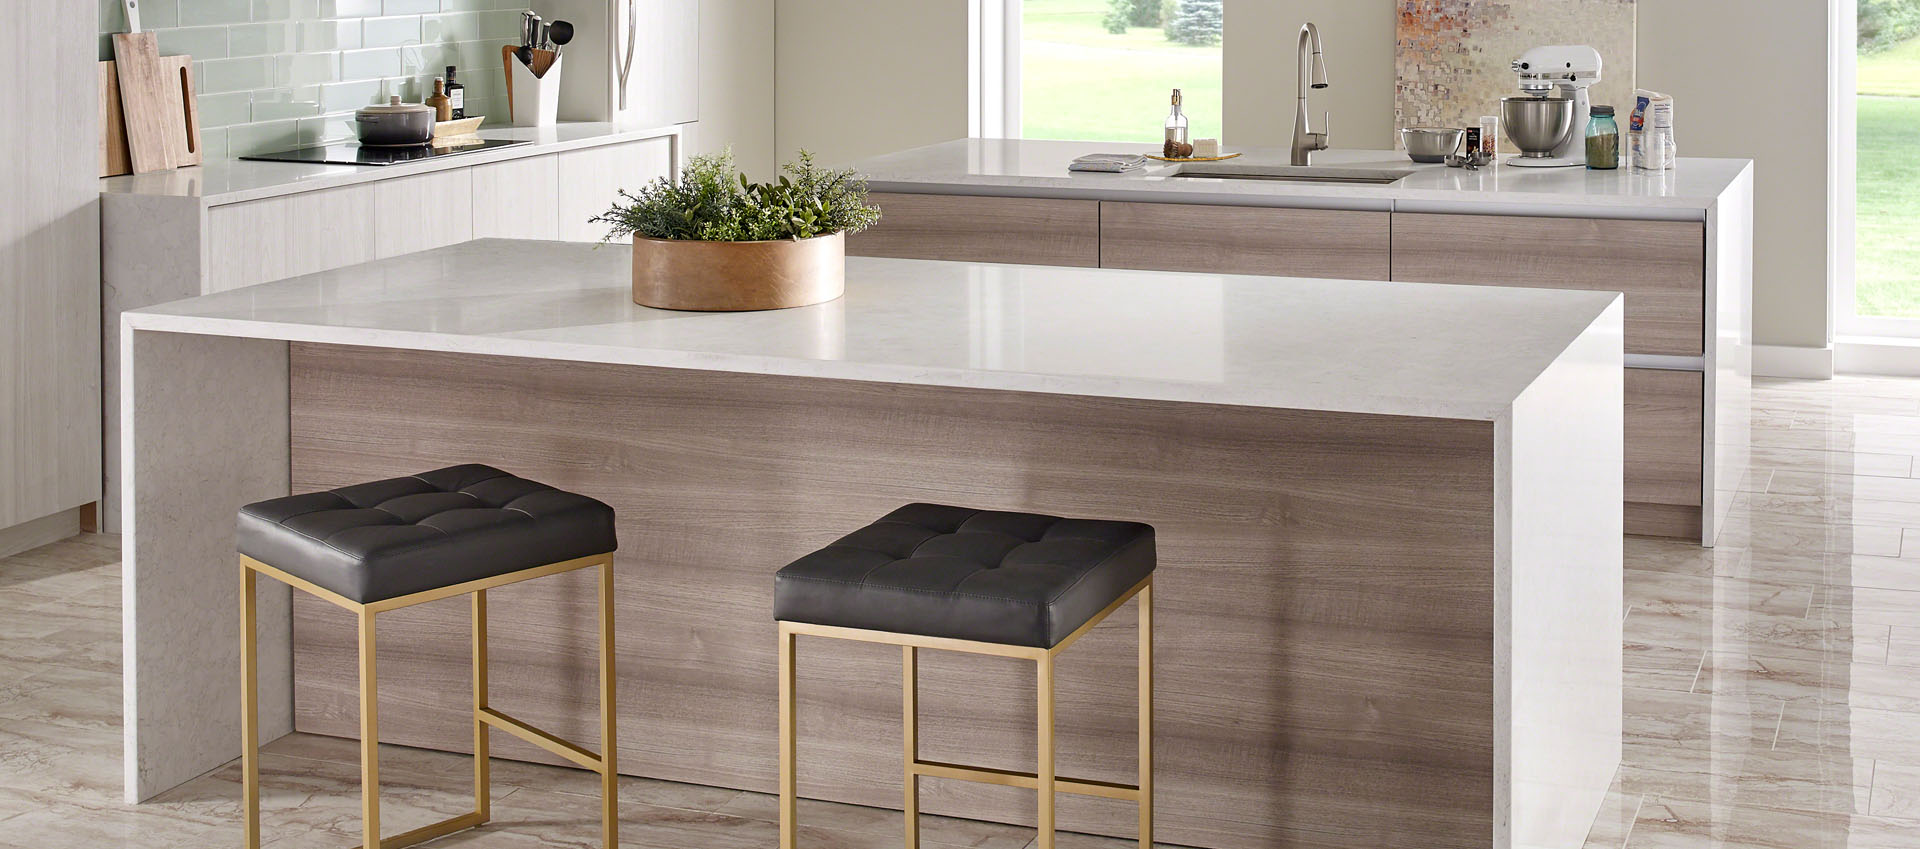 With a full palette of colors and styles, there is a Q™ Premium Natural Quartz countertop to complement any space